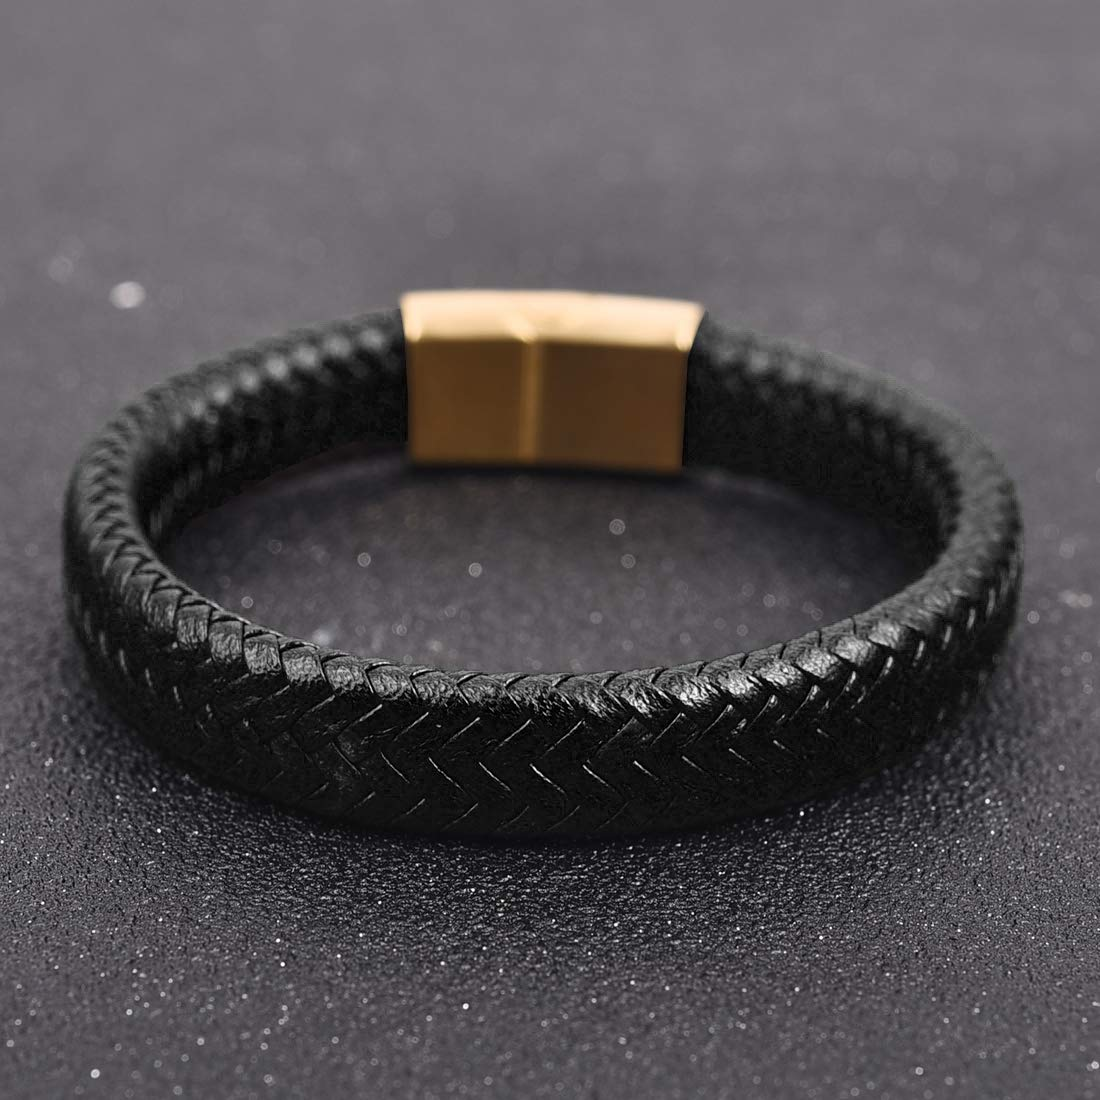 JIAYIQI Braided Leather Bracelets for Mens with Magnetic Clasp Bracelet 7.3-8.7 Inch